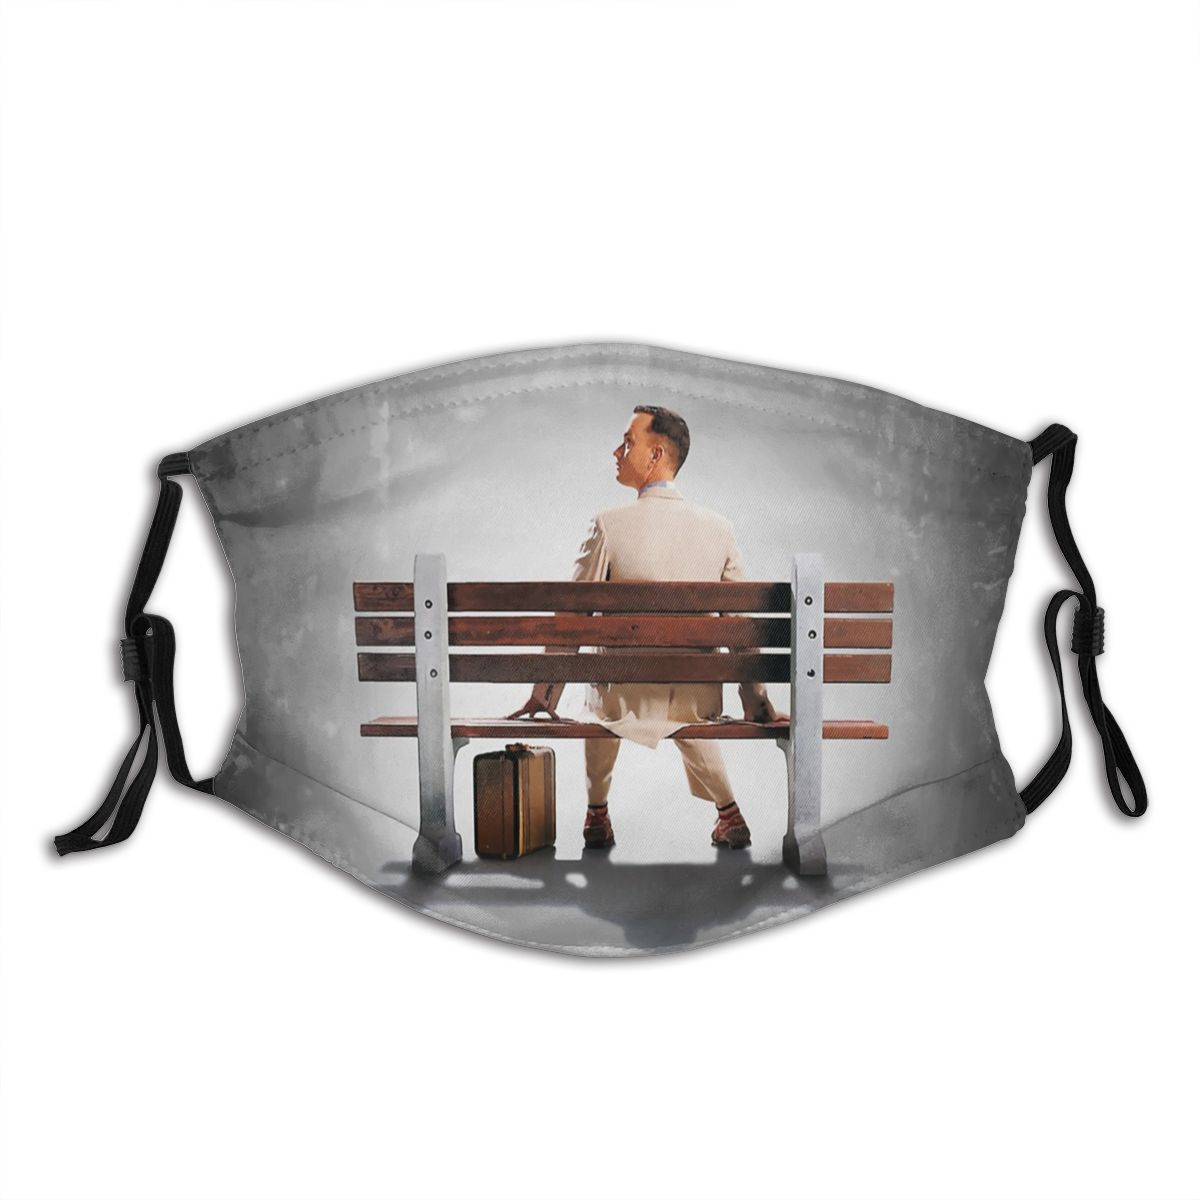 Forrest Gump Adult Mouth Face Mask Tom Hanks Movie Anti Haze Dustproof Mask With Filters Protection Mask Respirator Mouth Muffle